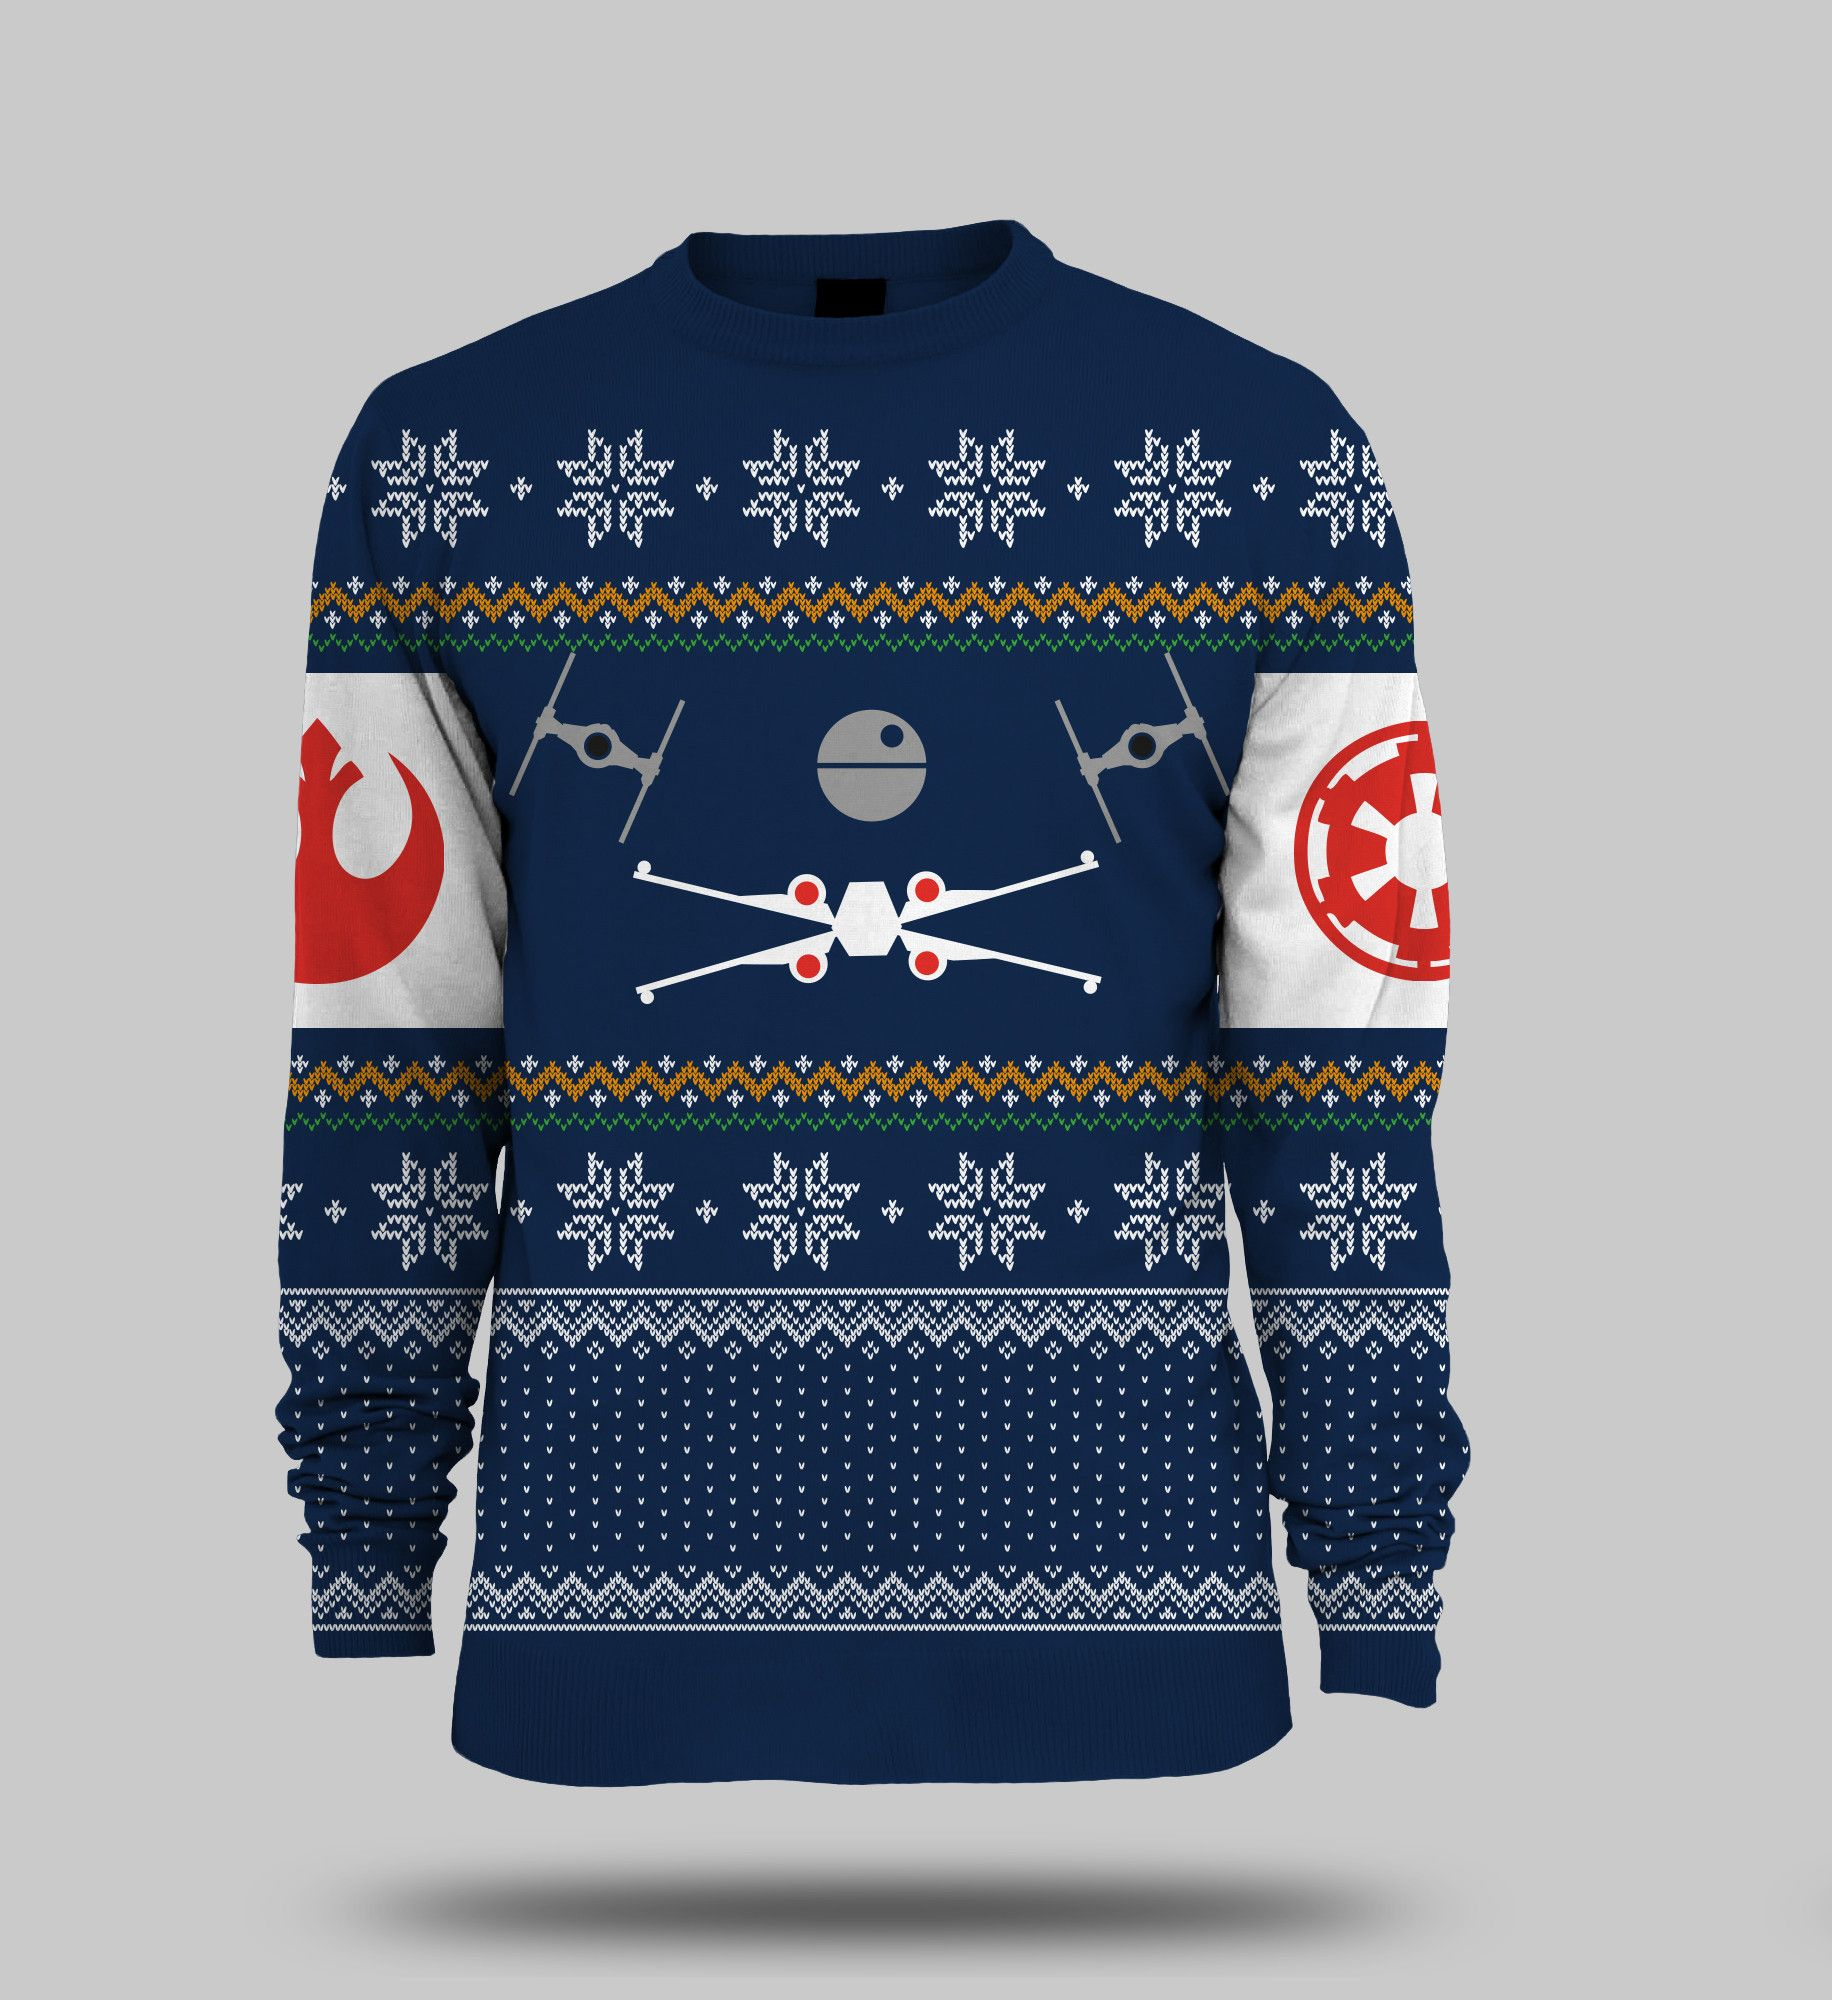 Sweater Tie Fighter Official Star Wars Christmas Jumper X-Wing Vs